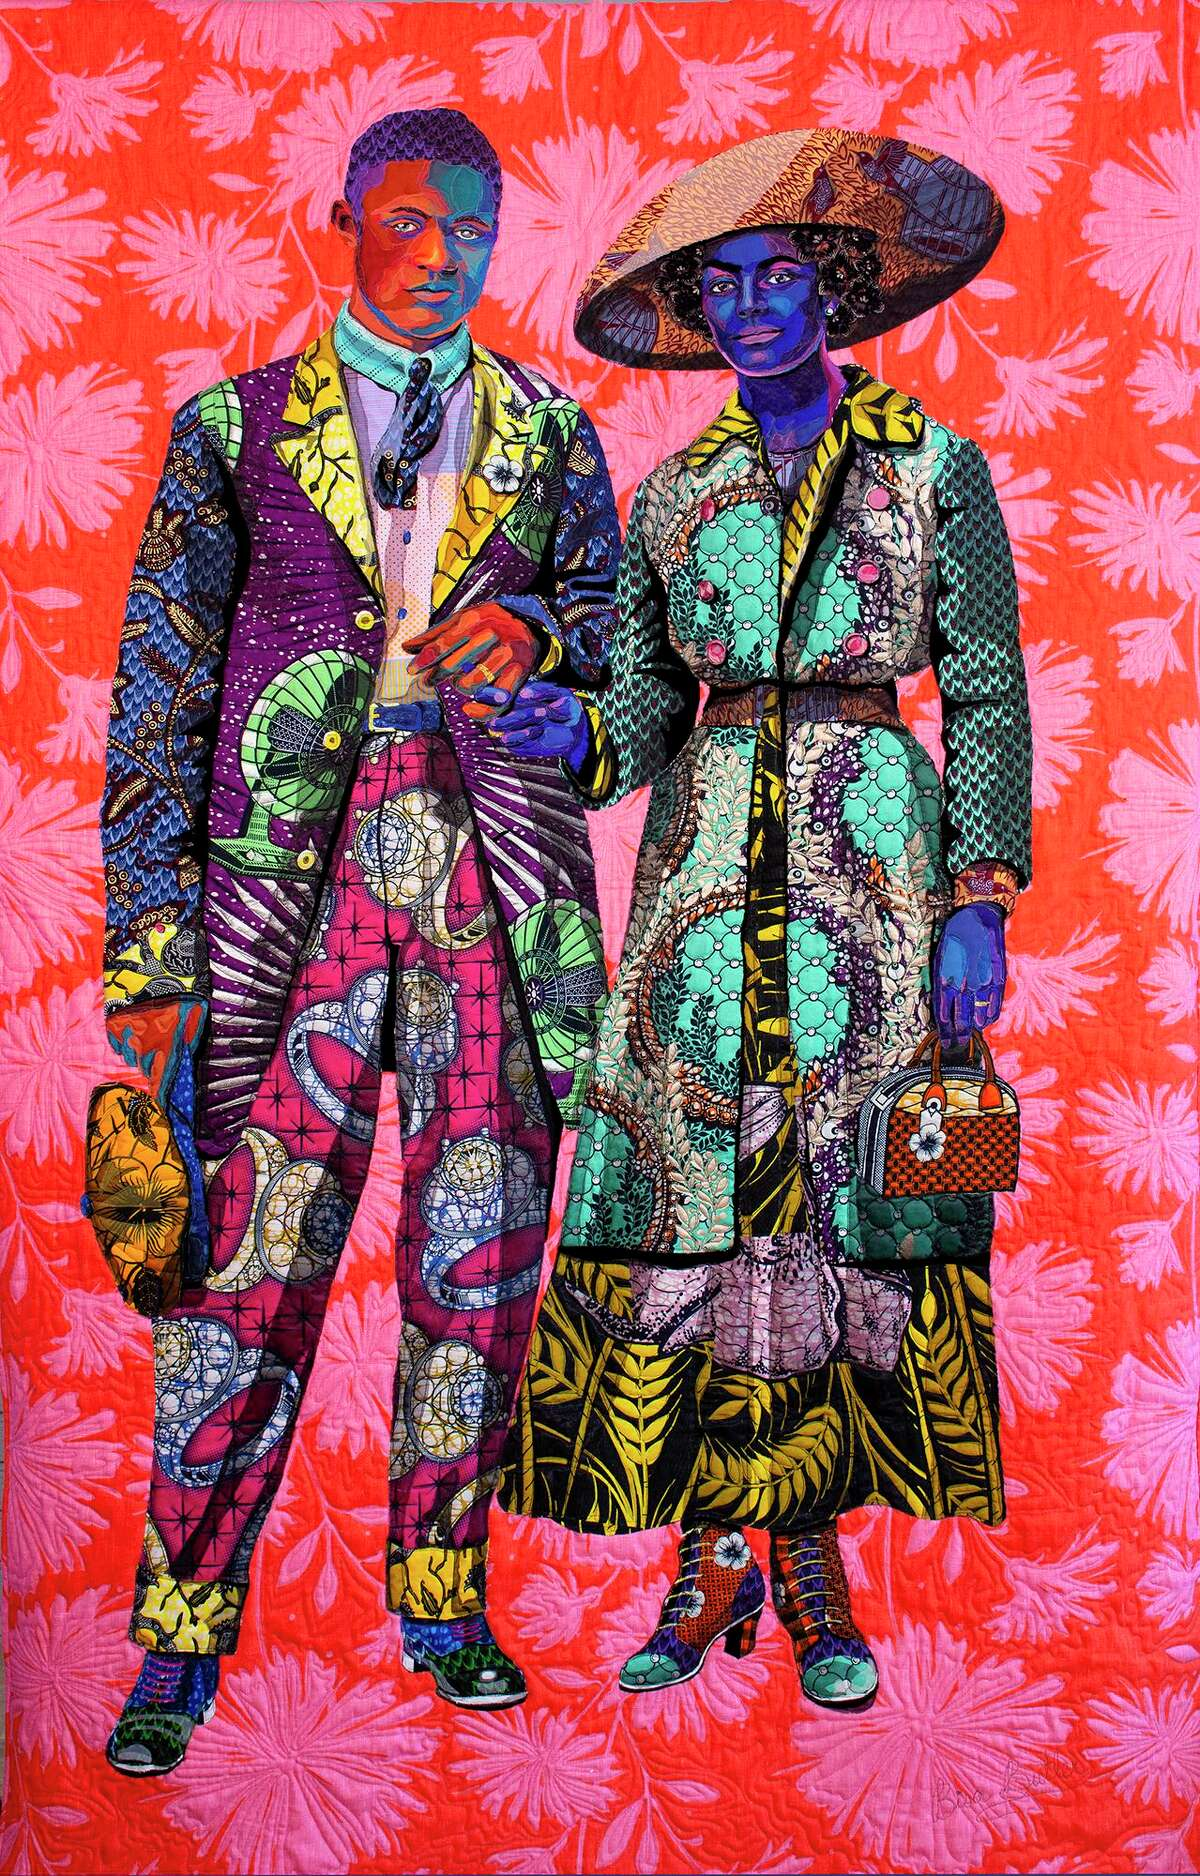 Bisa Butler is a fiber artist known for depicting African American identity and culture on her vibrant quilts. She will be holding her first solo exhibition at the Katonah Museum of Art. Butler's